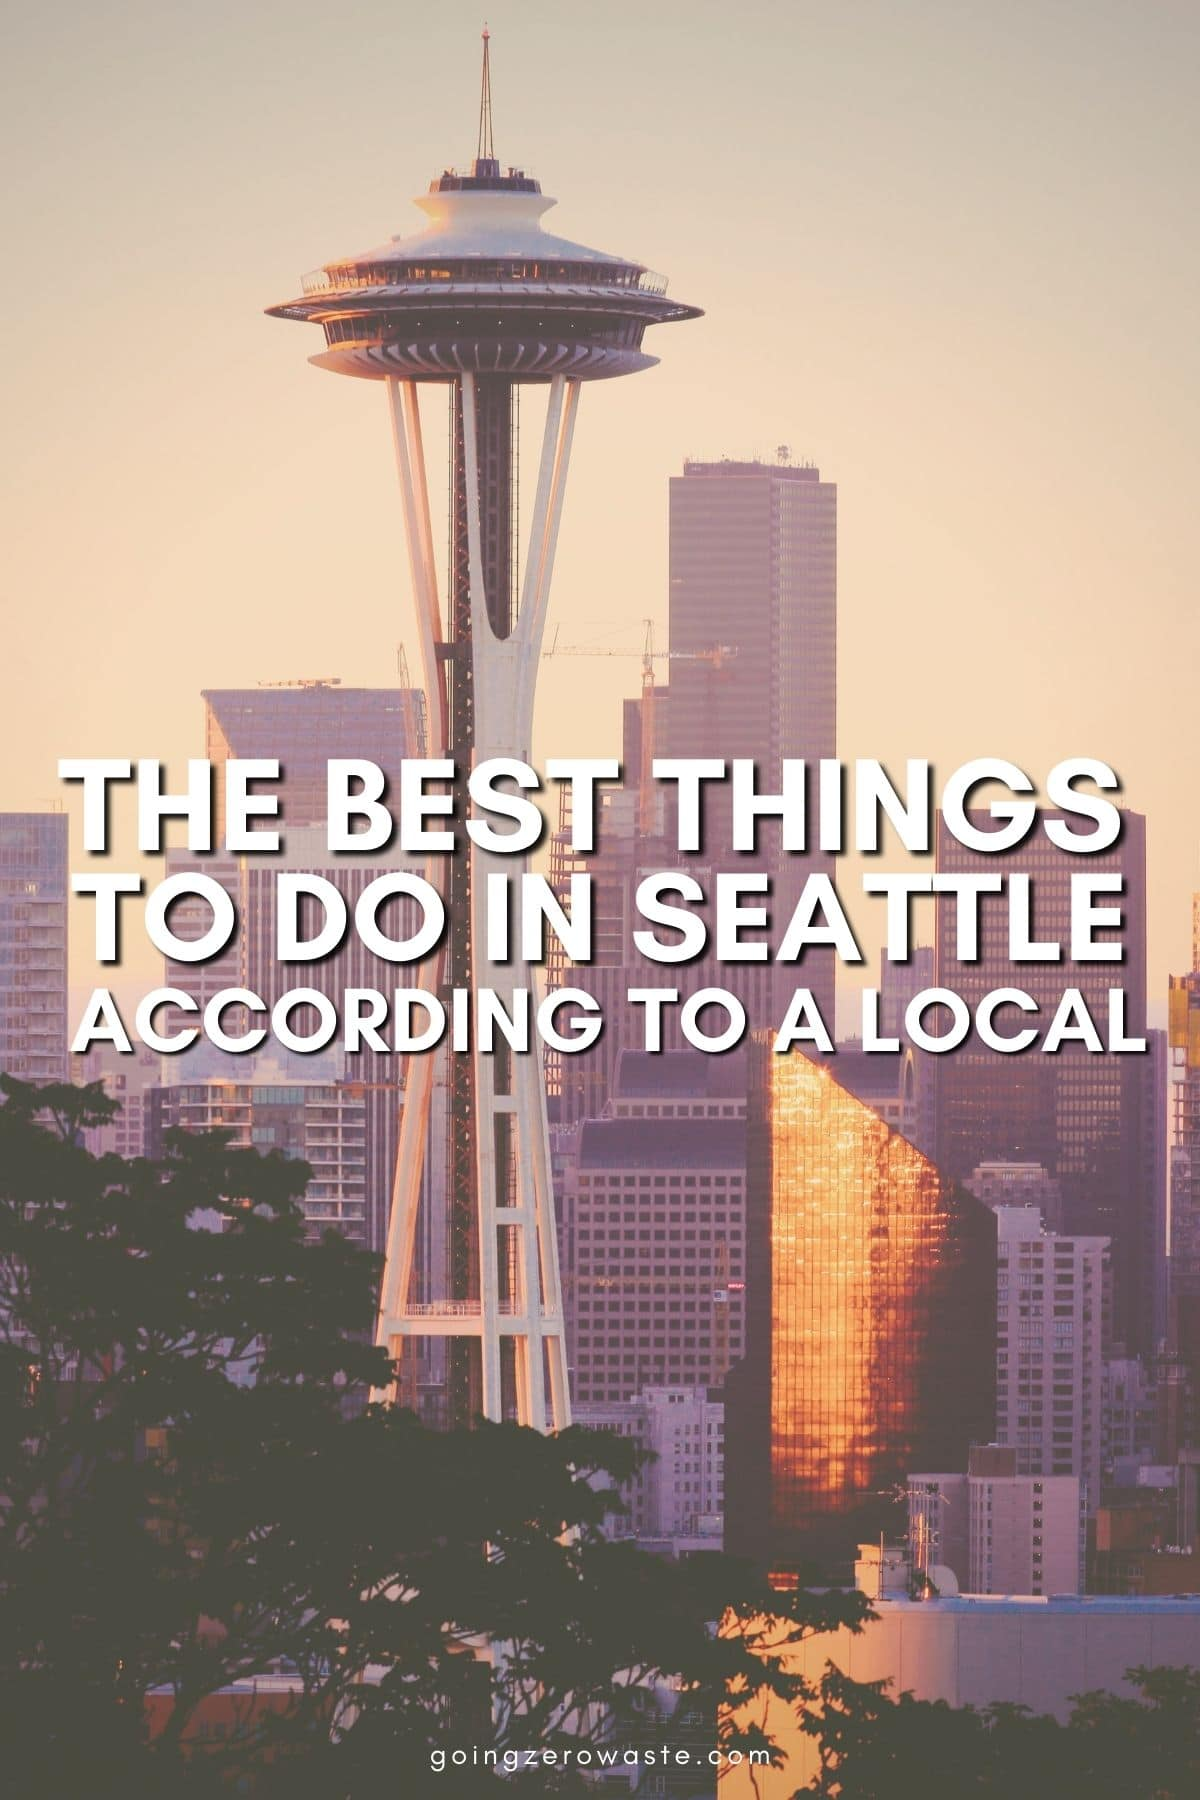 The Best Things to Do in Seattle According to a Local